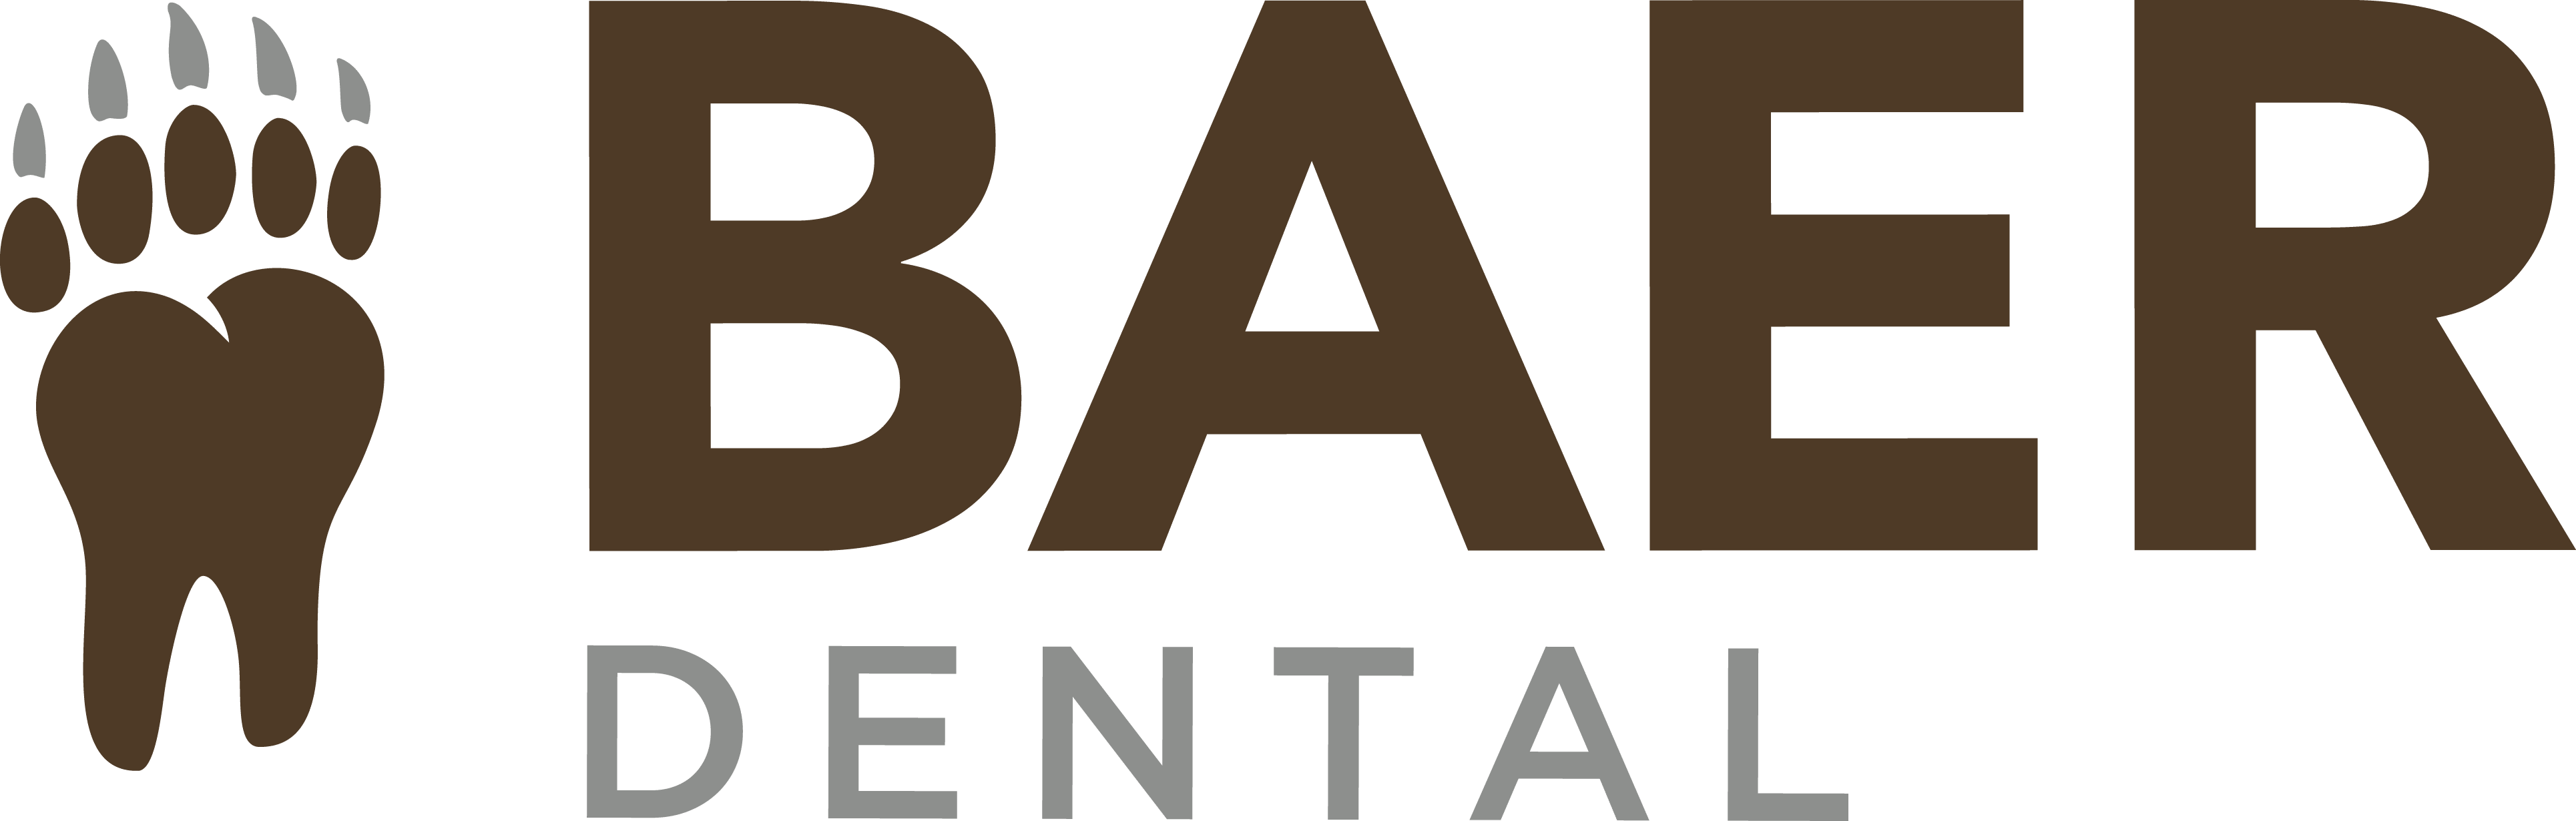 Baer Dental Designs Logo